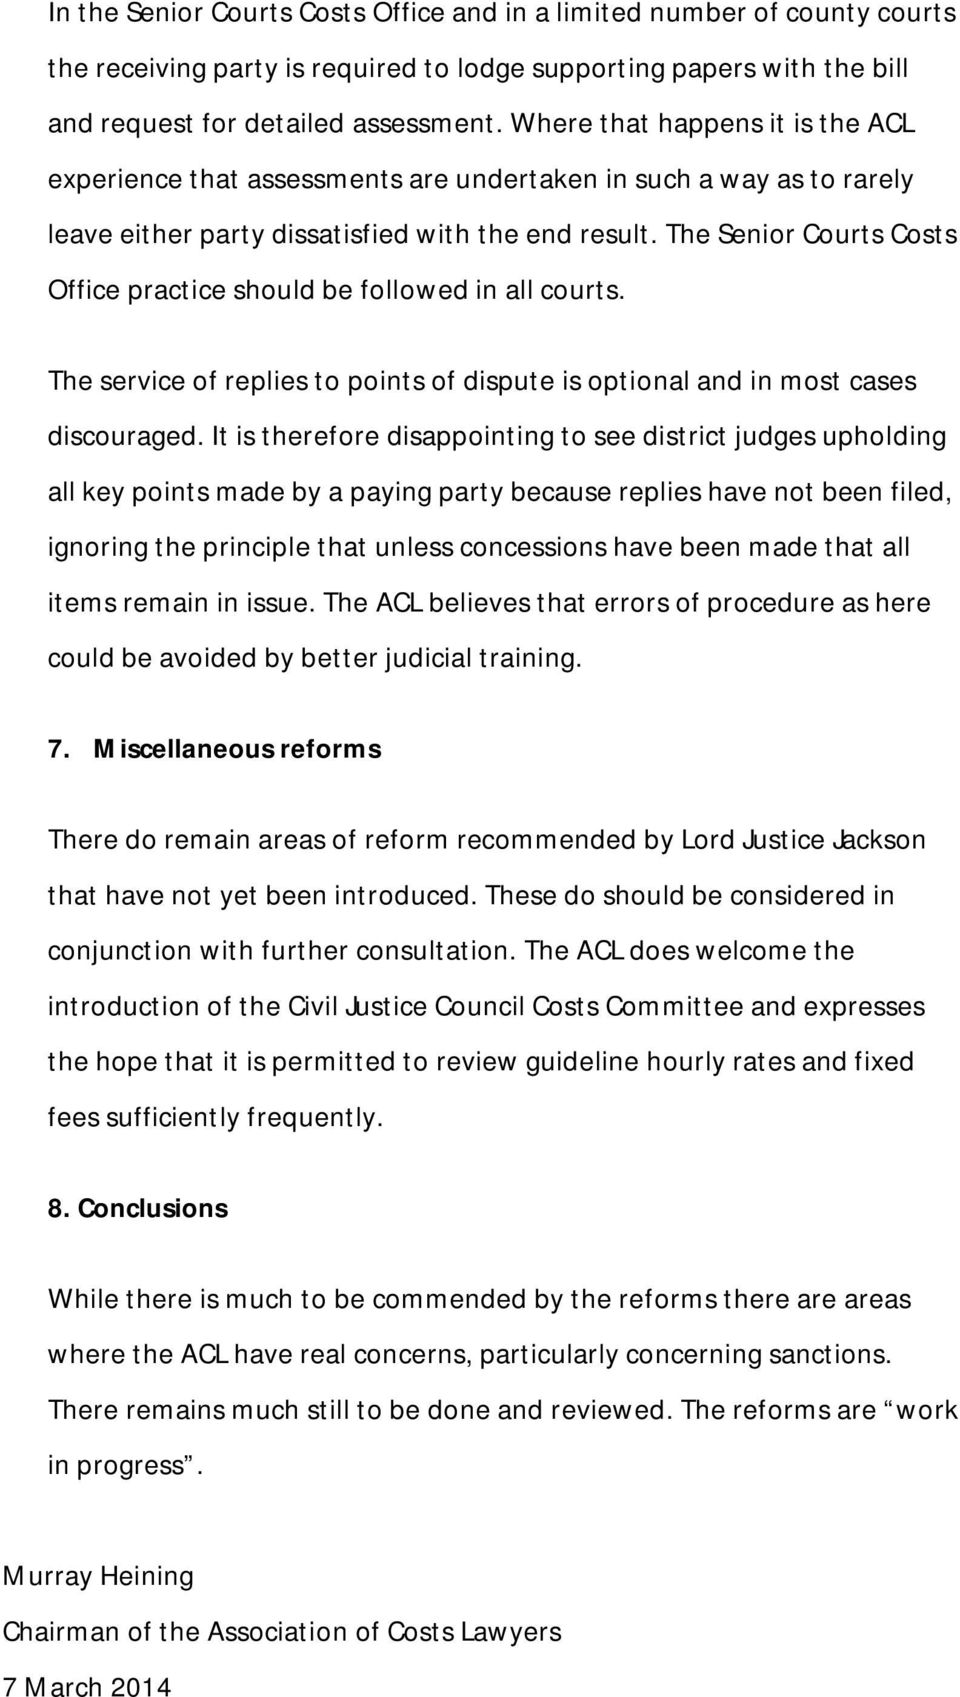 The Senior Courts Costs Office practice should be followed in all courts. The service of replies to points of dispute is optional and in most cases discouraged.